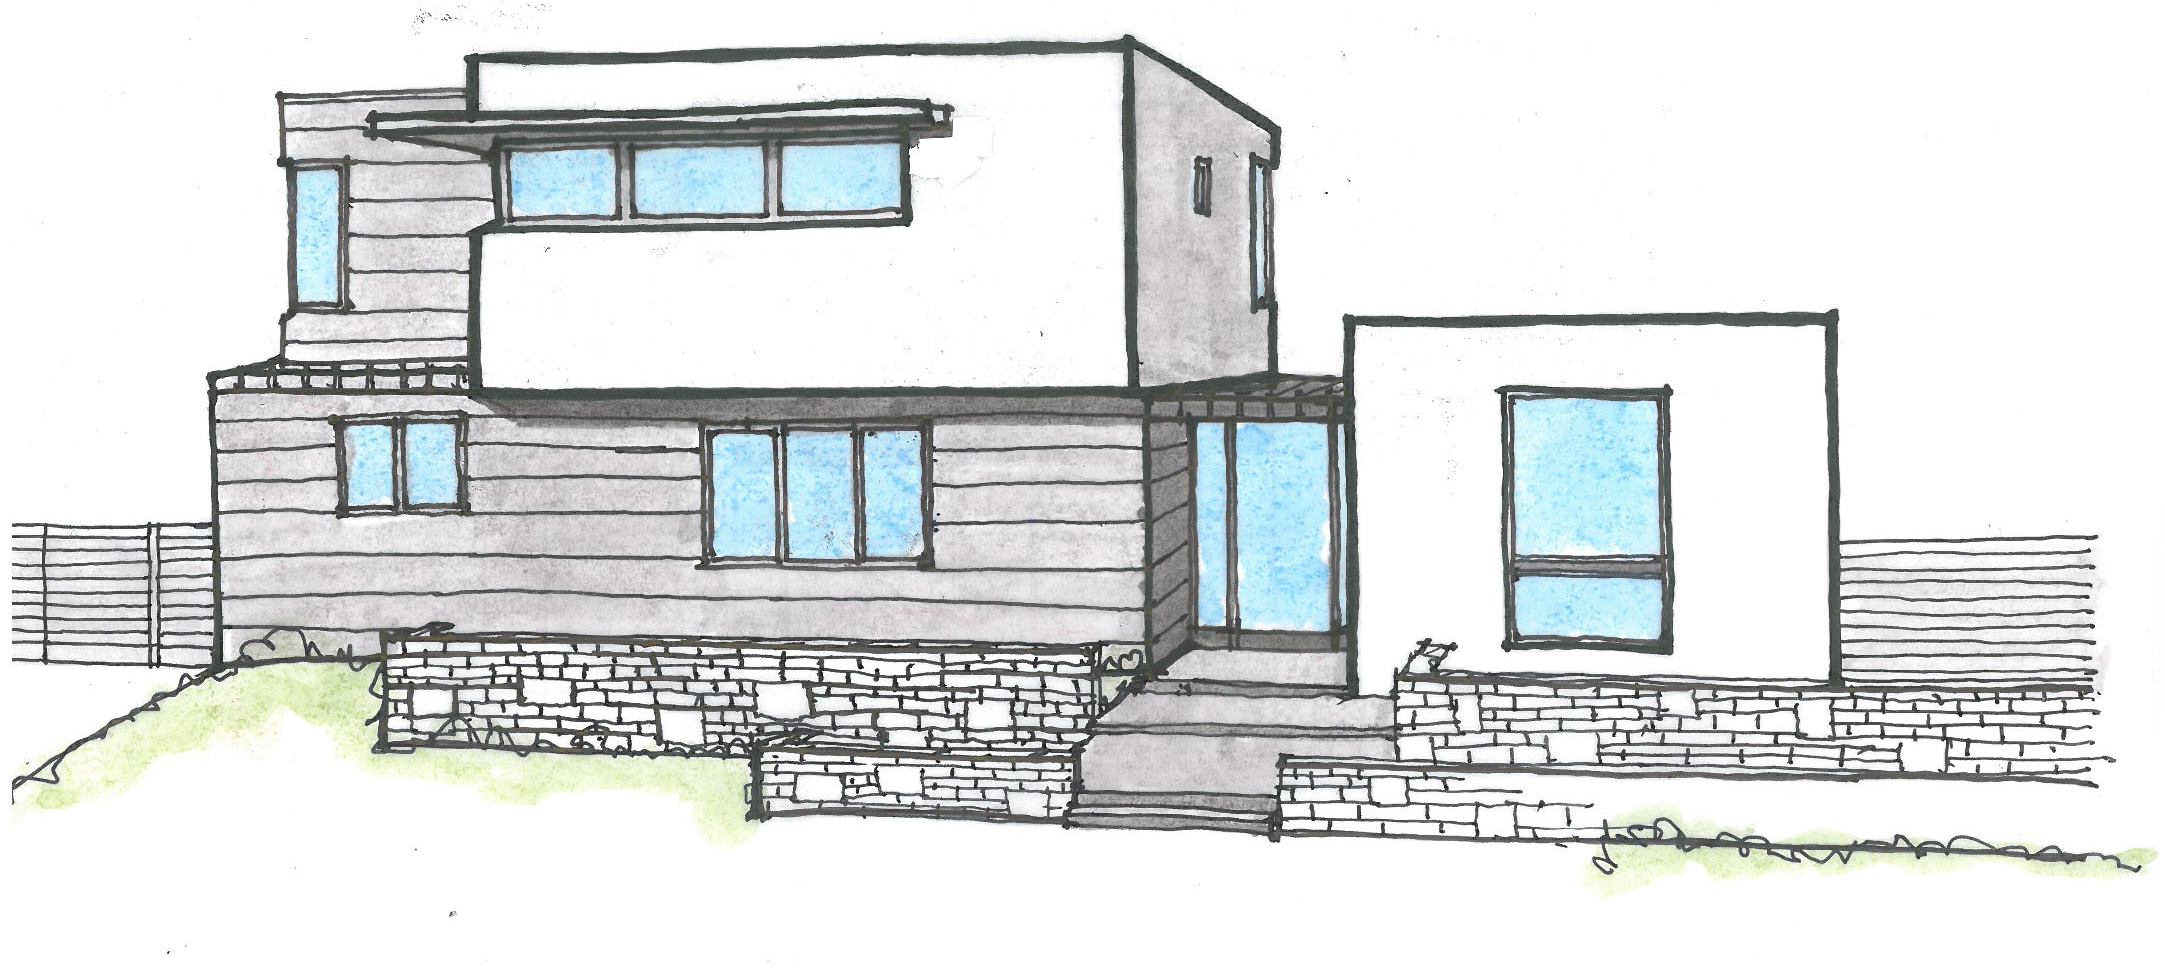 House architecture drawing at free for for Online architecture design